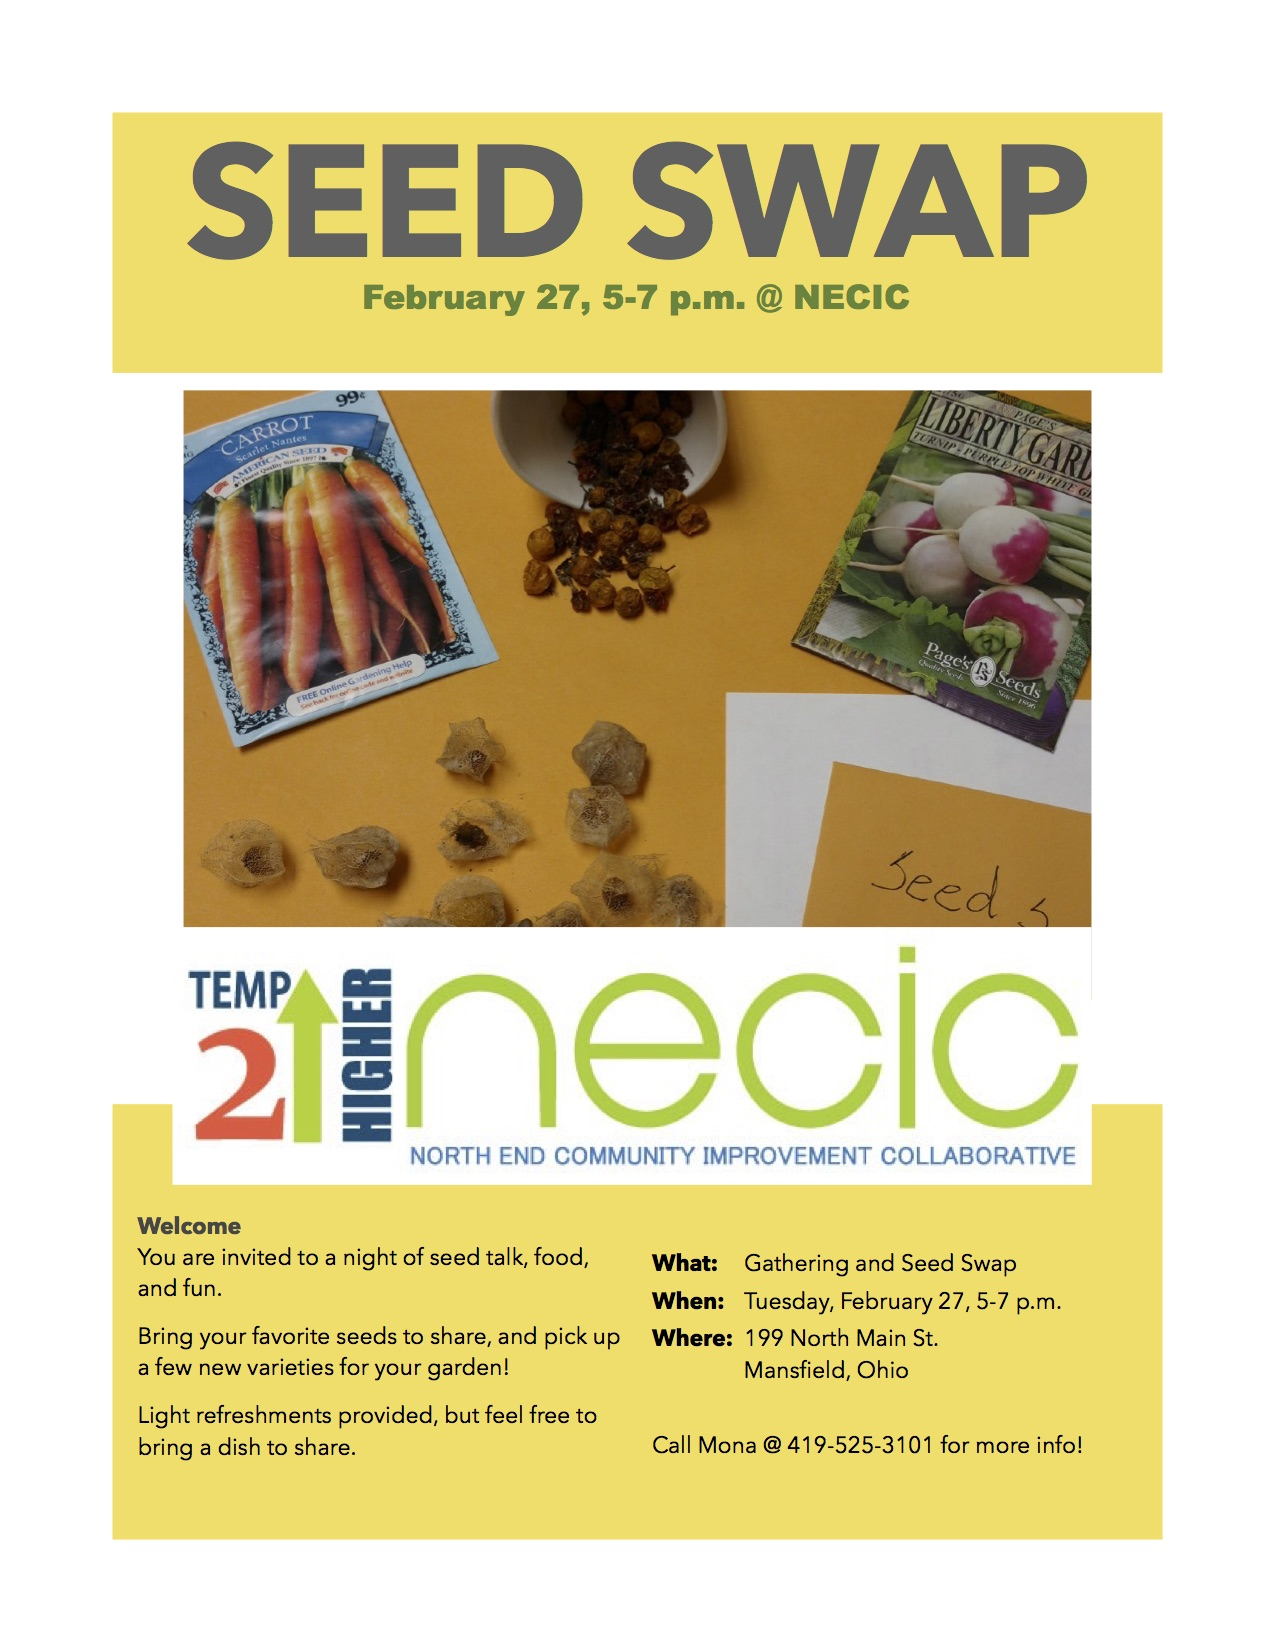 Calling all gardeners! Seeds, Food, and Fun!